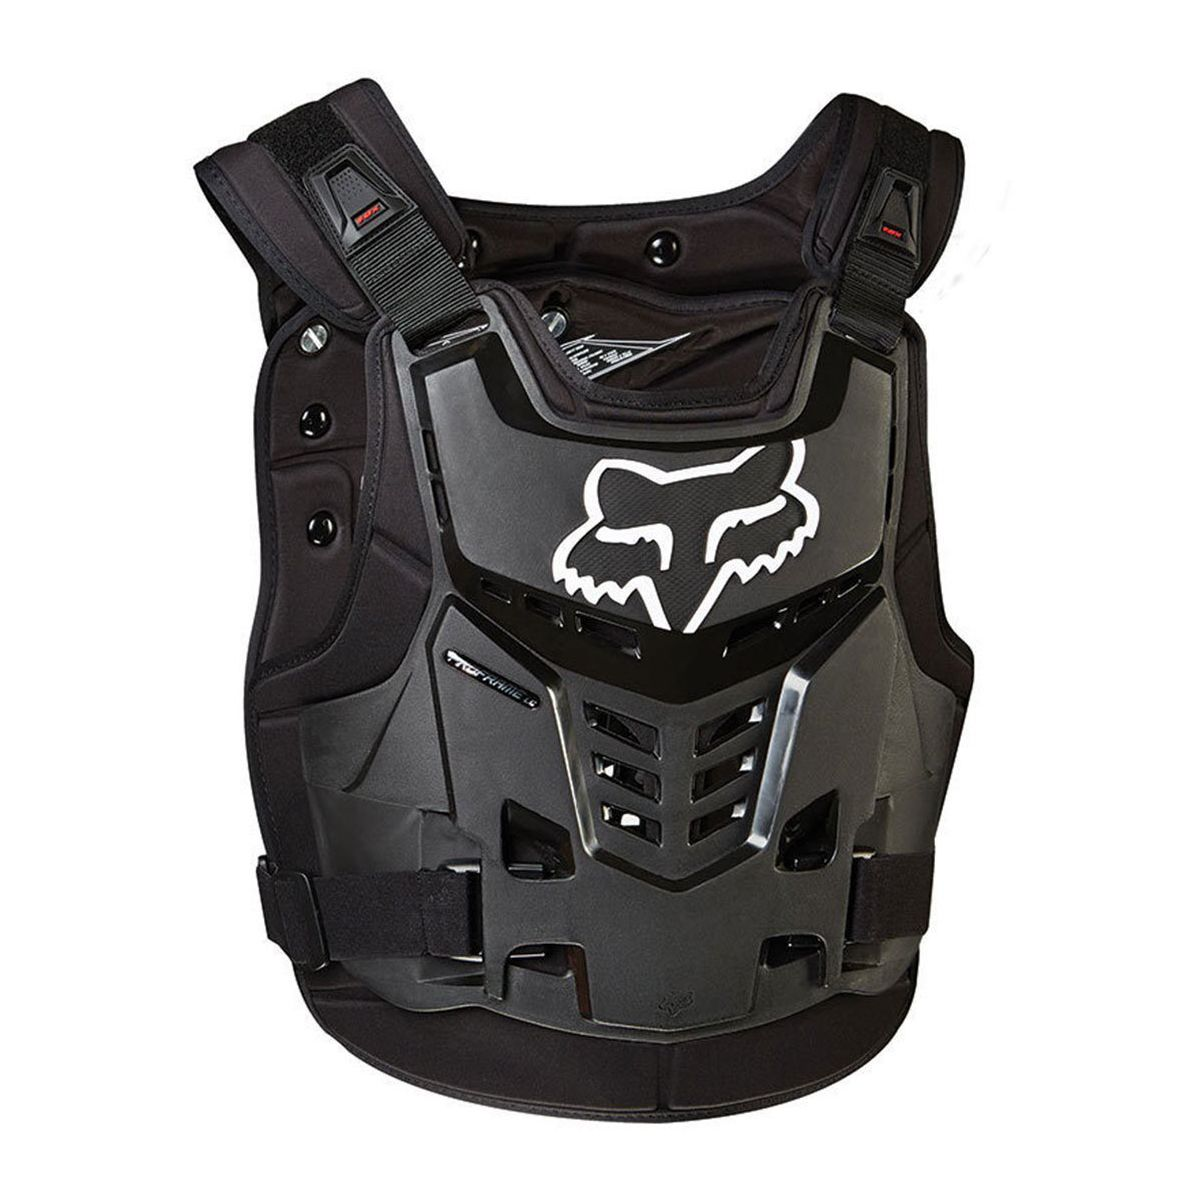 PROFRAME LC YOUTH protector vest